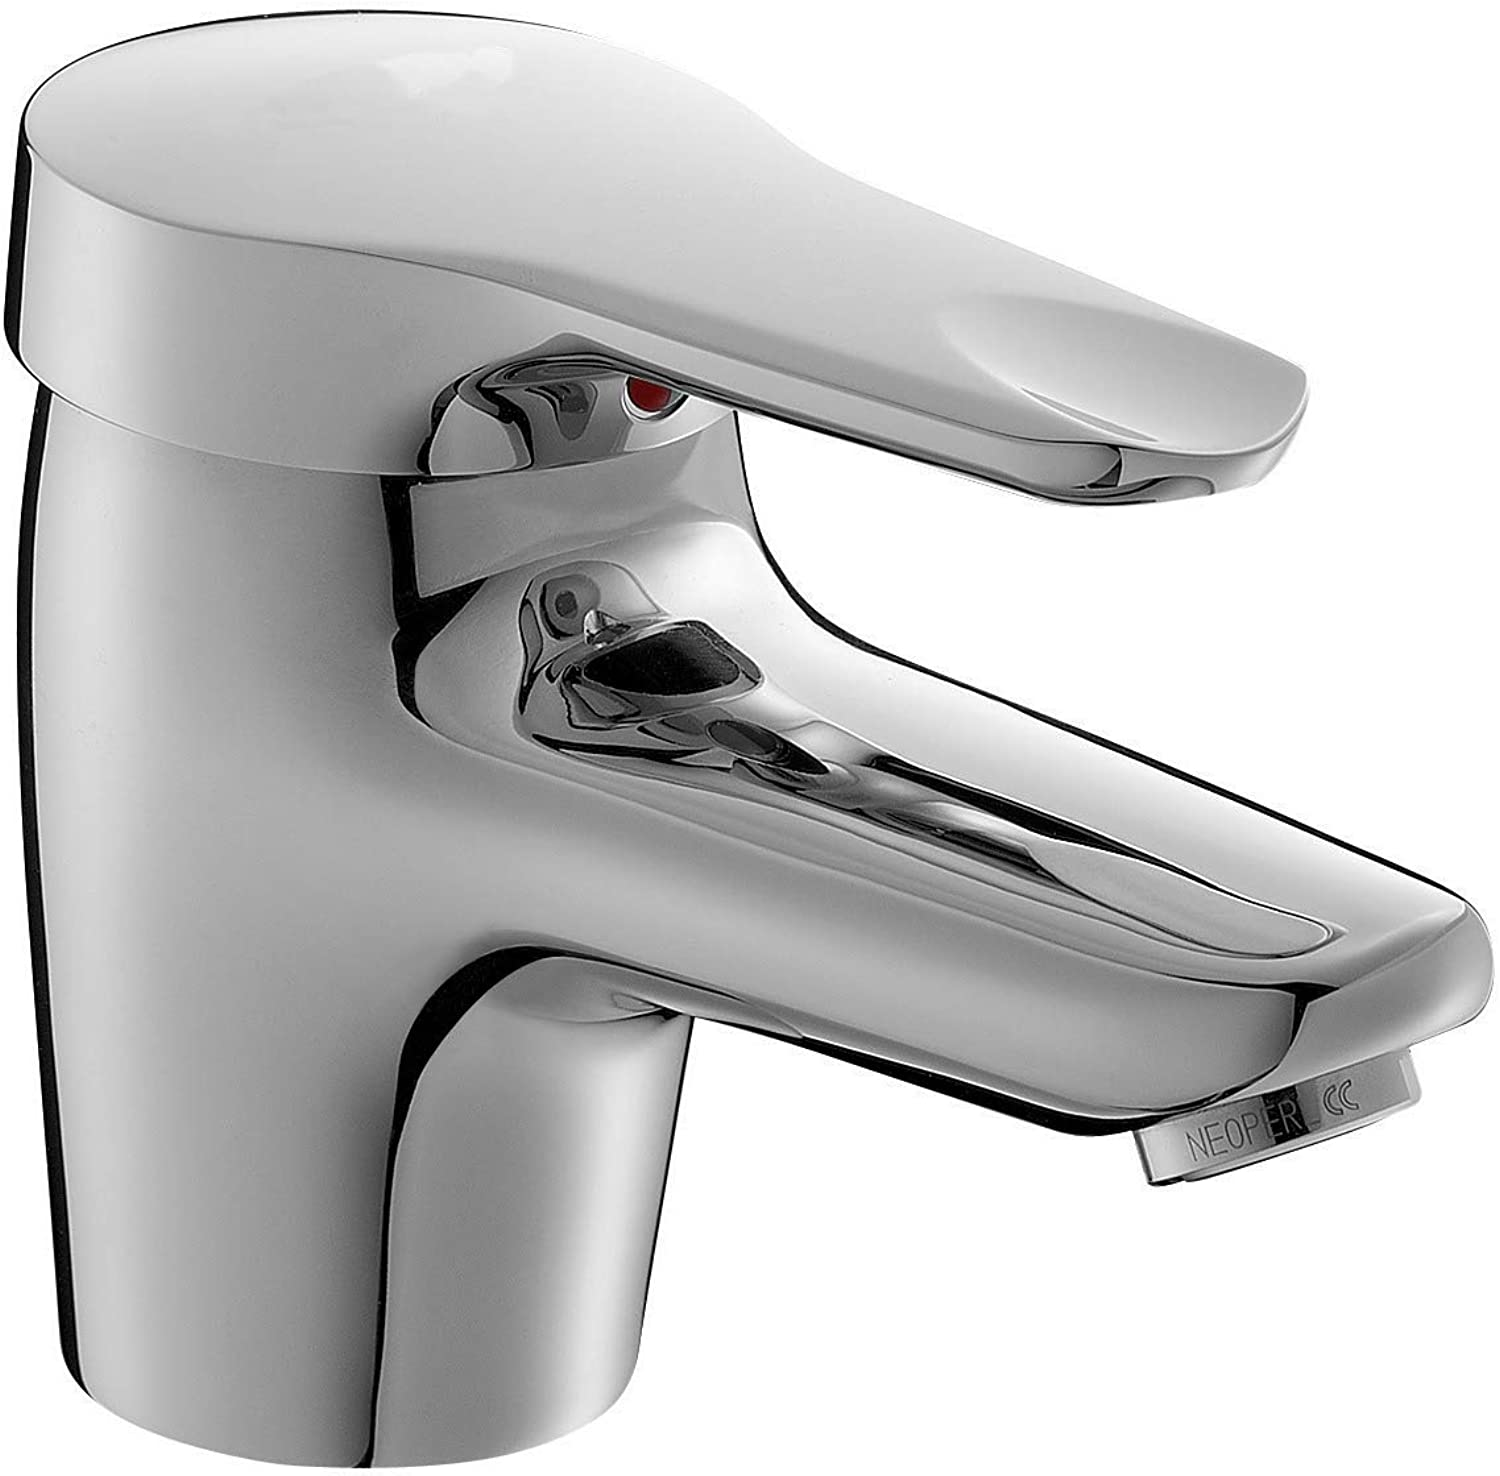 Jacob Delafon E660-CP Single-Hole Sink Mixer Tap with Power Supply Hoses and Waste